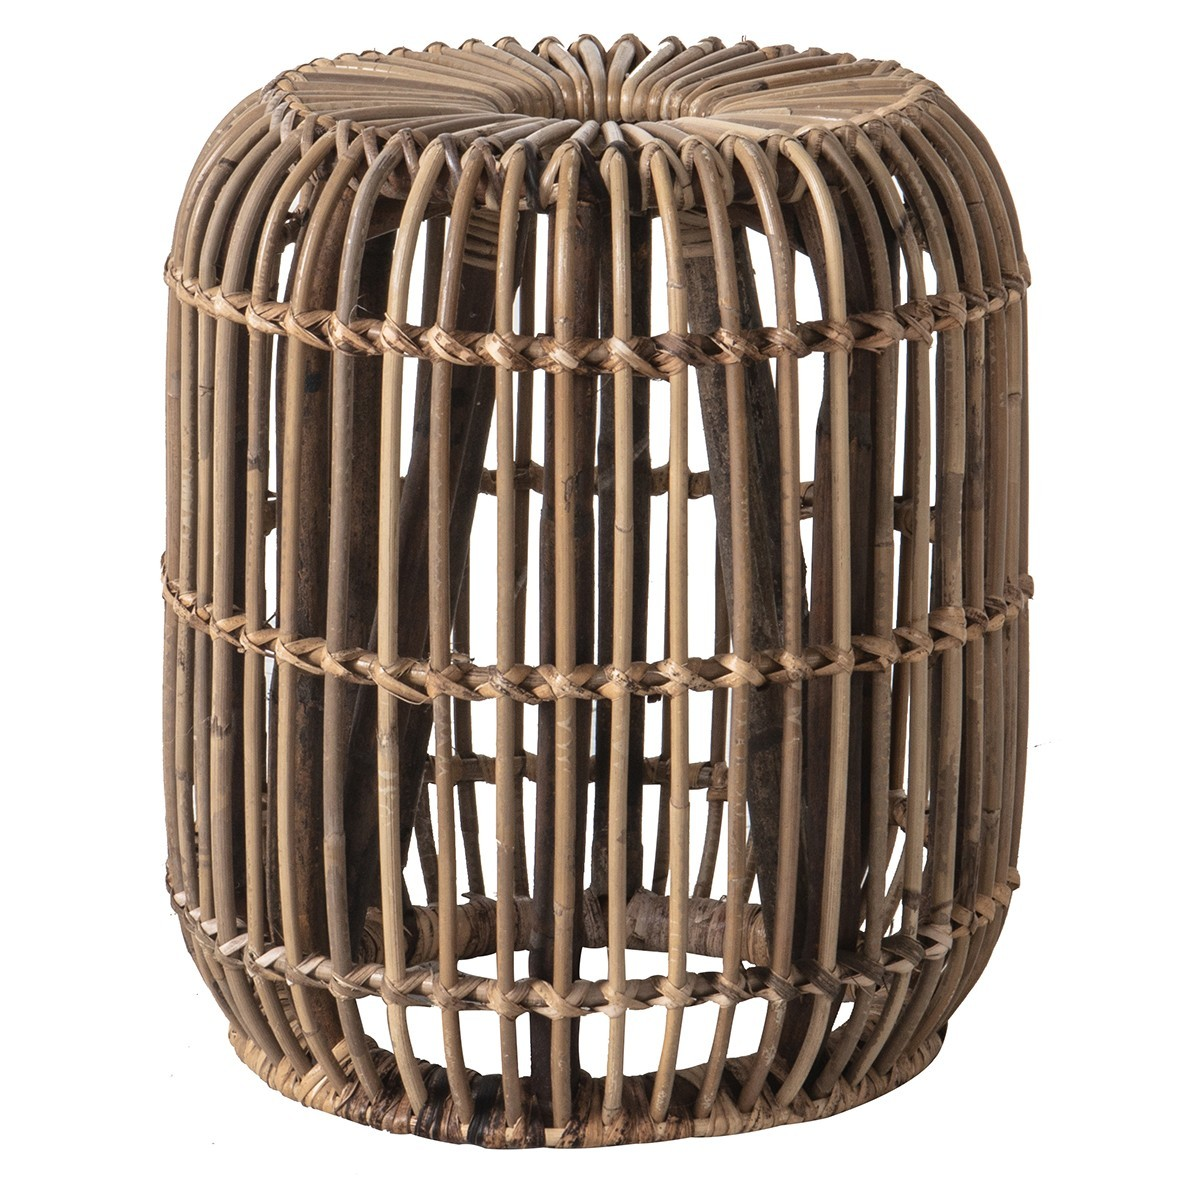 Dixie Rattan Round Side Table, Small, Natural